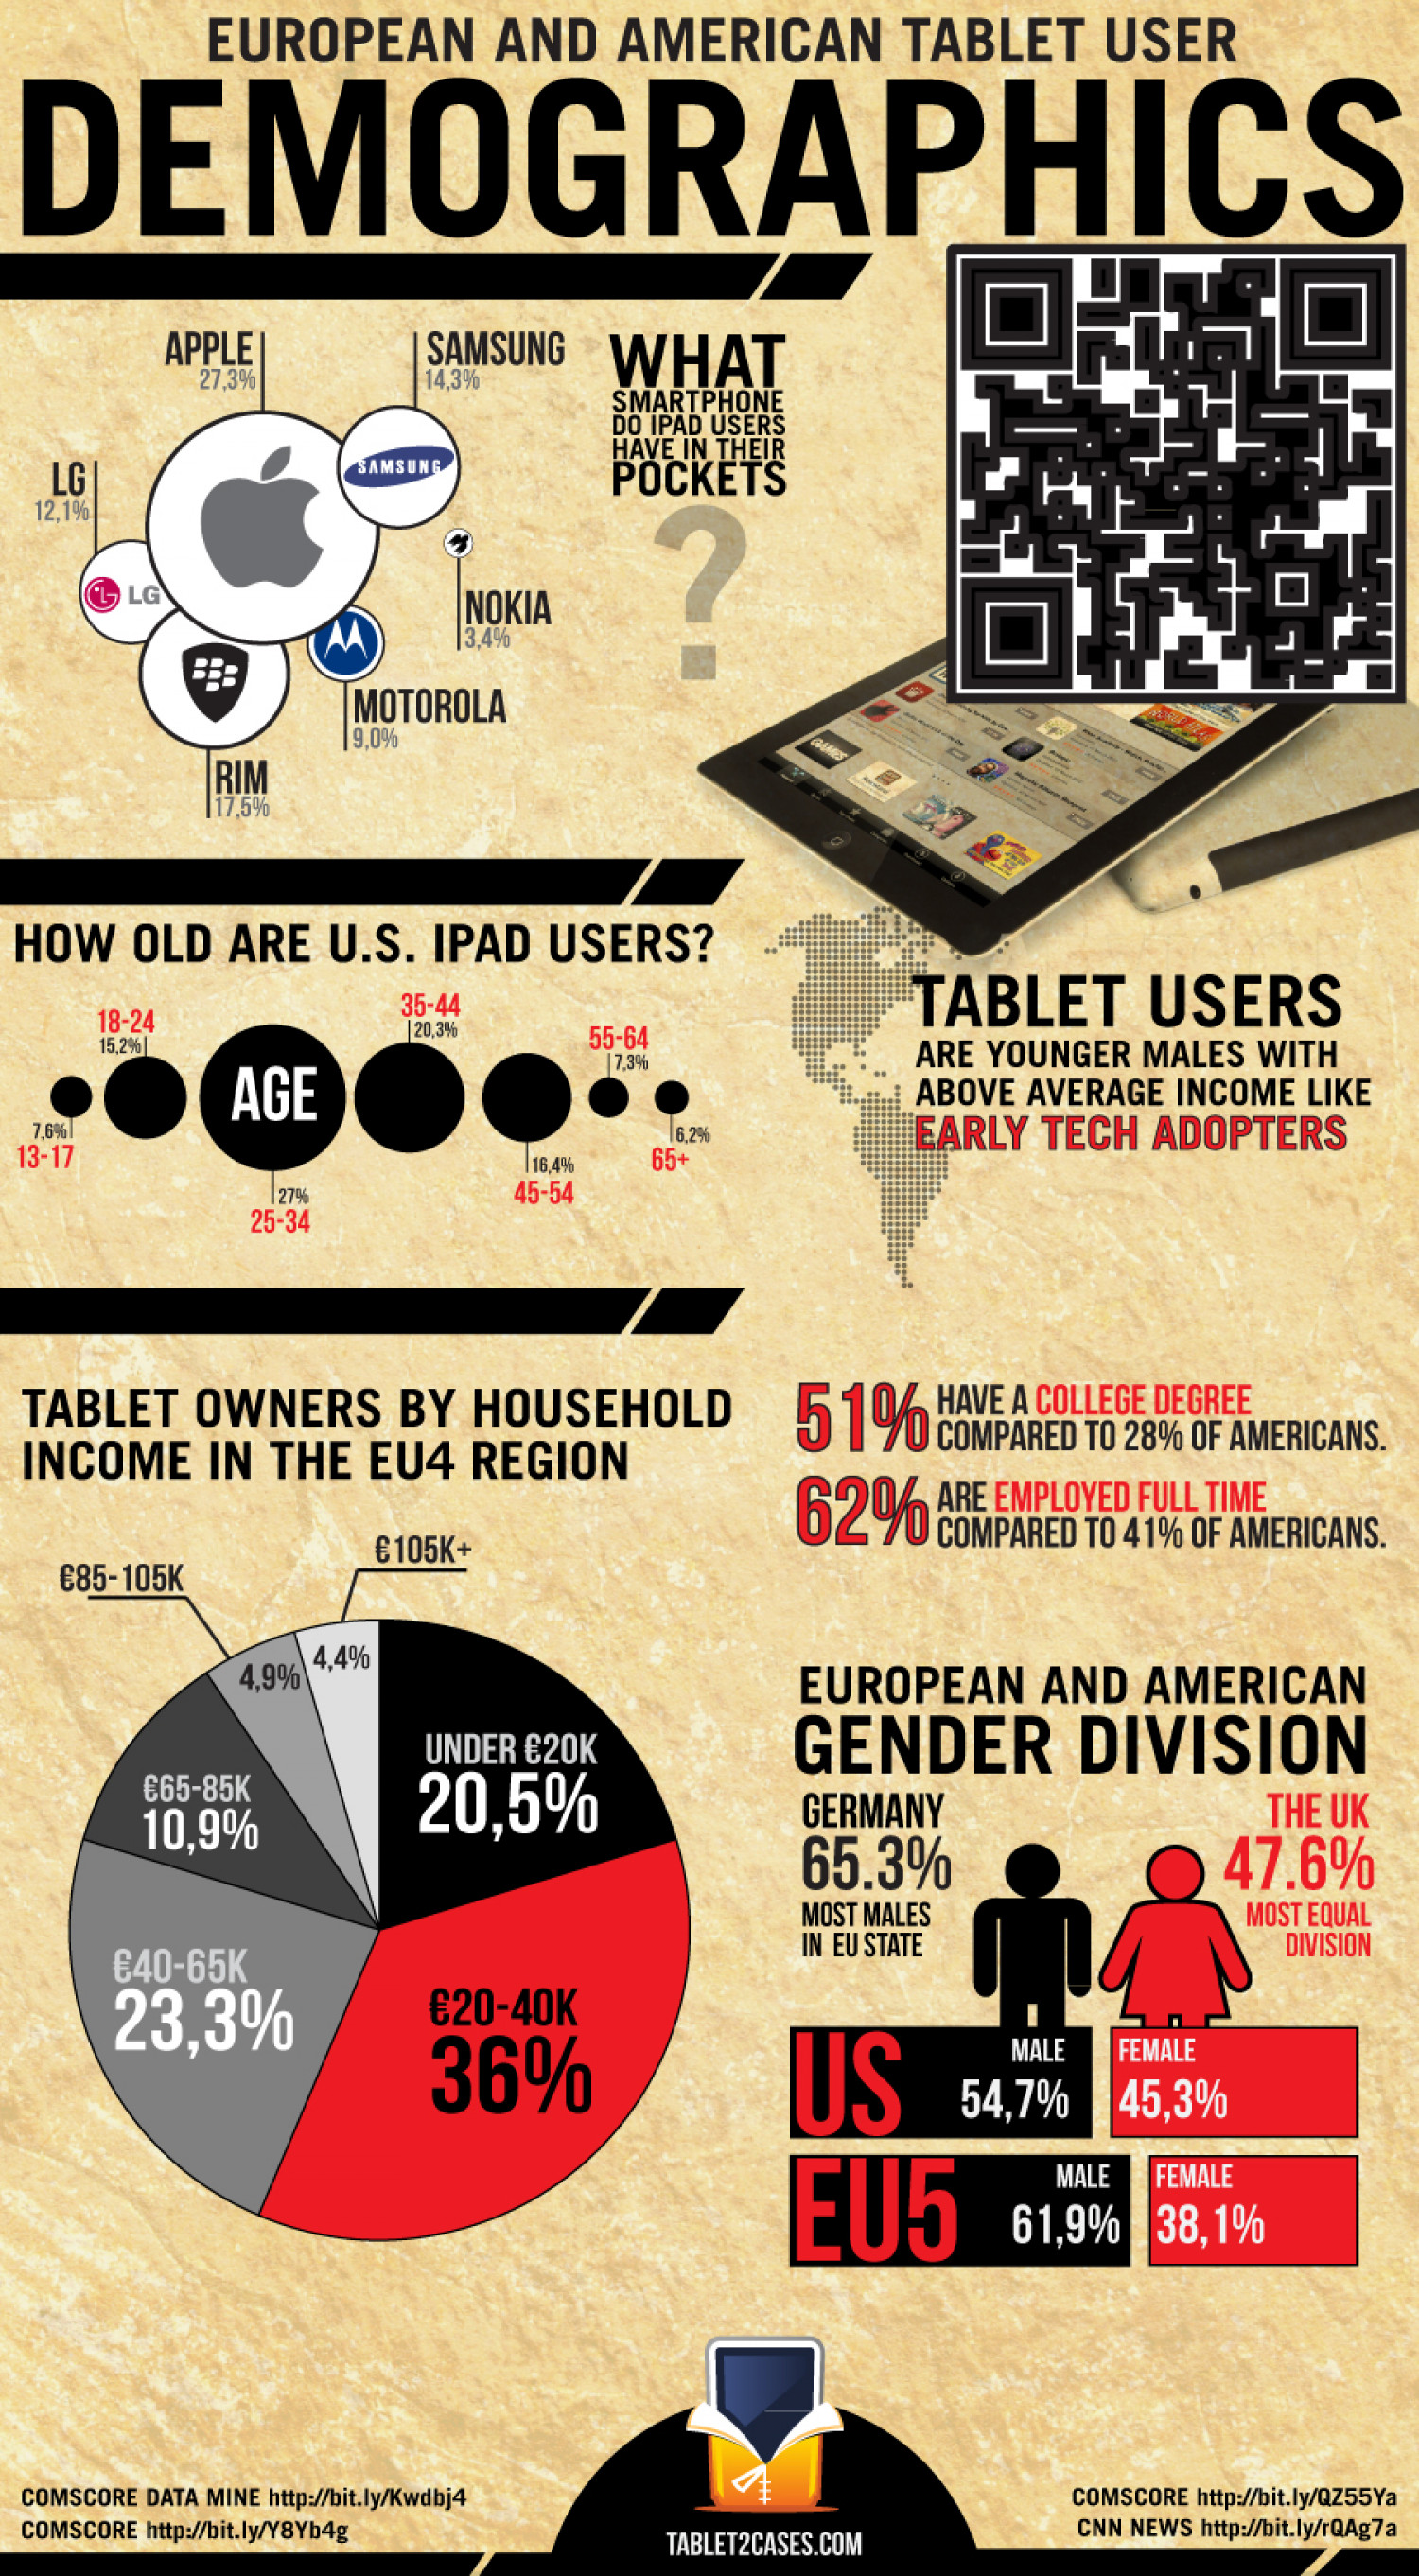 European and American Tablet User Demographics Infographic